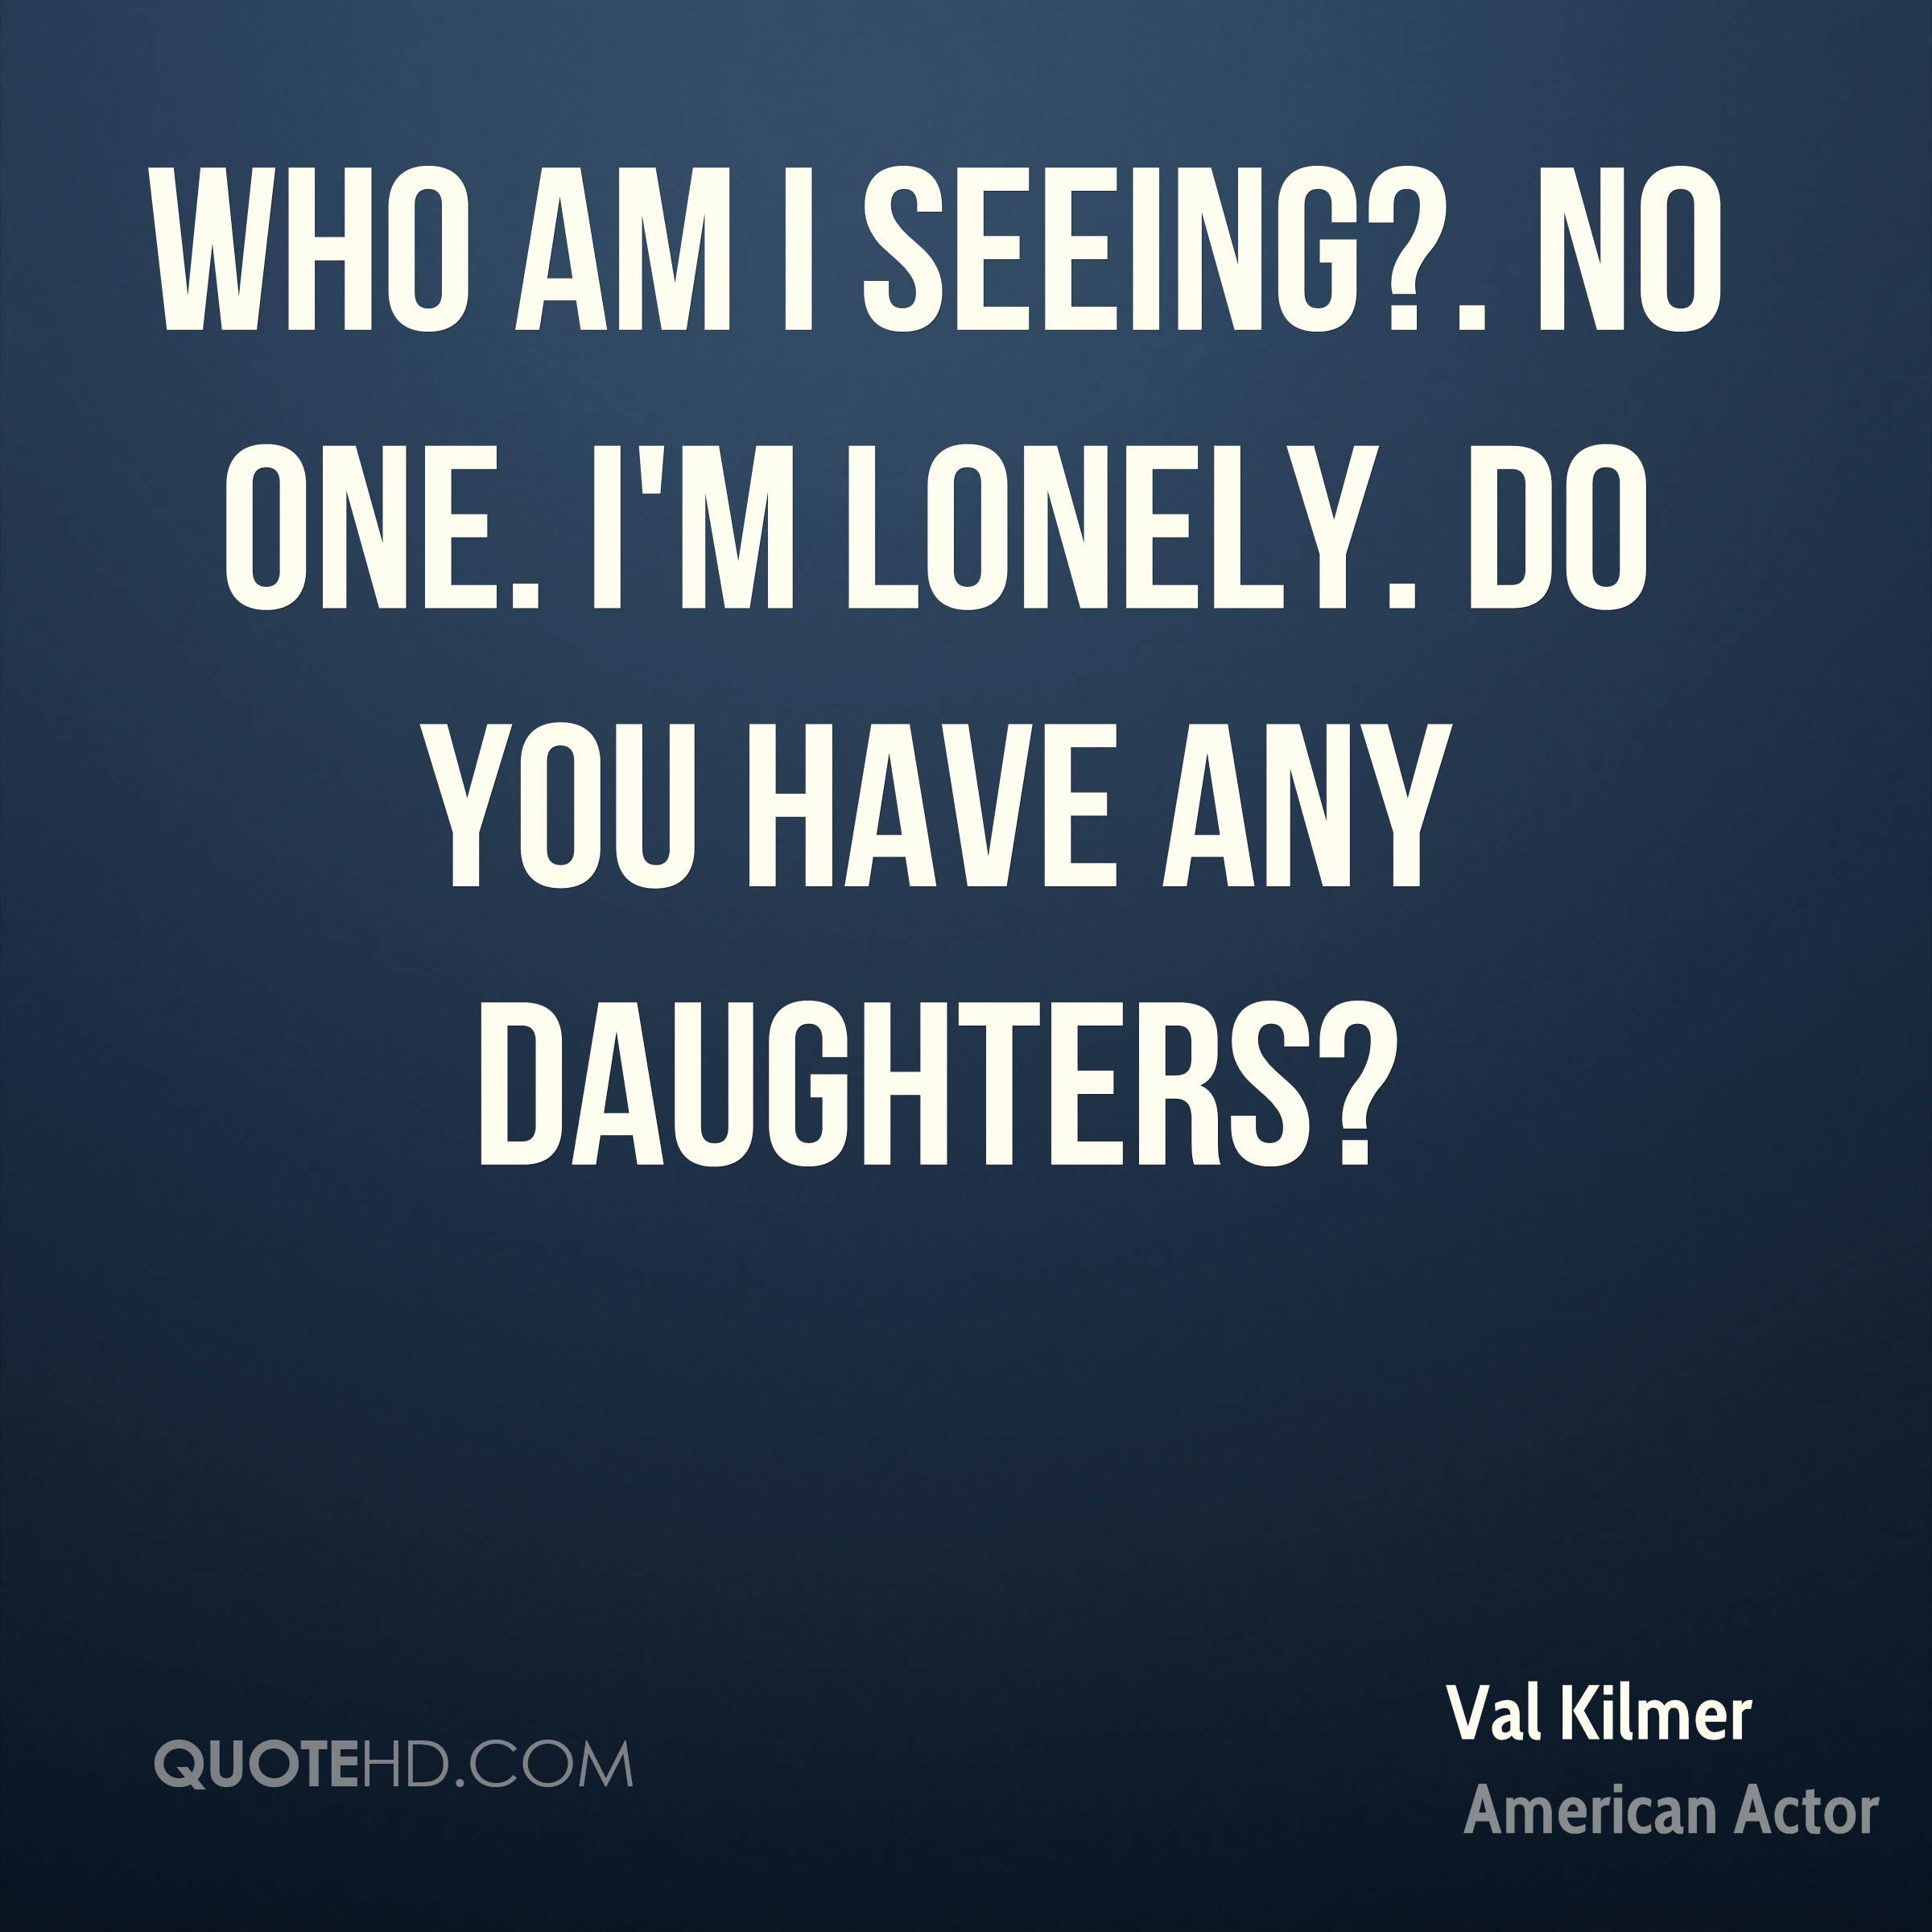 Val Kilmer Quotes | QuoteHD